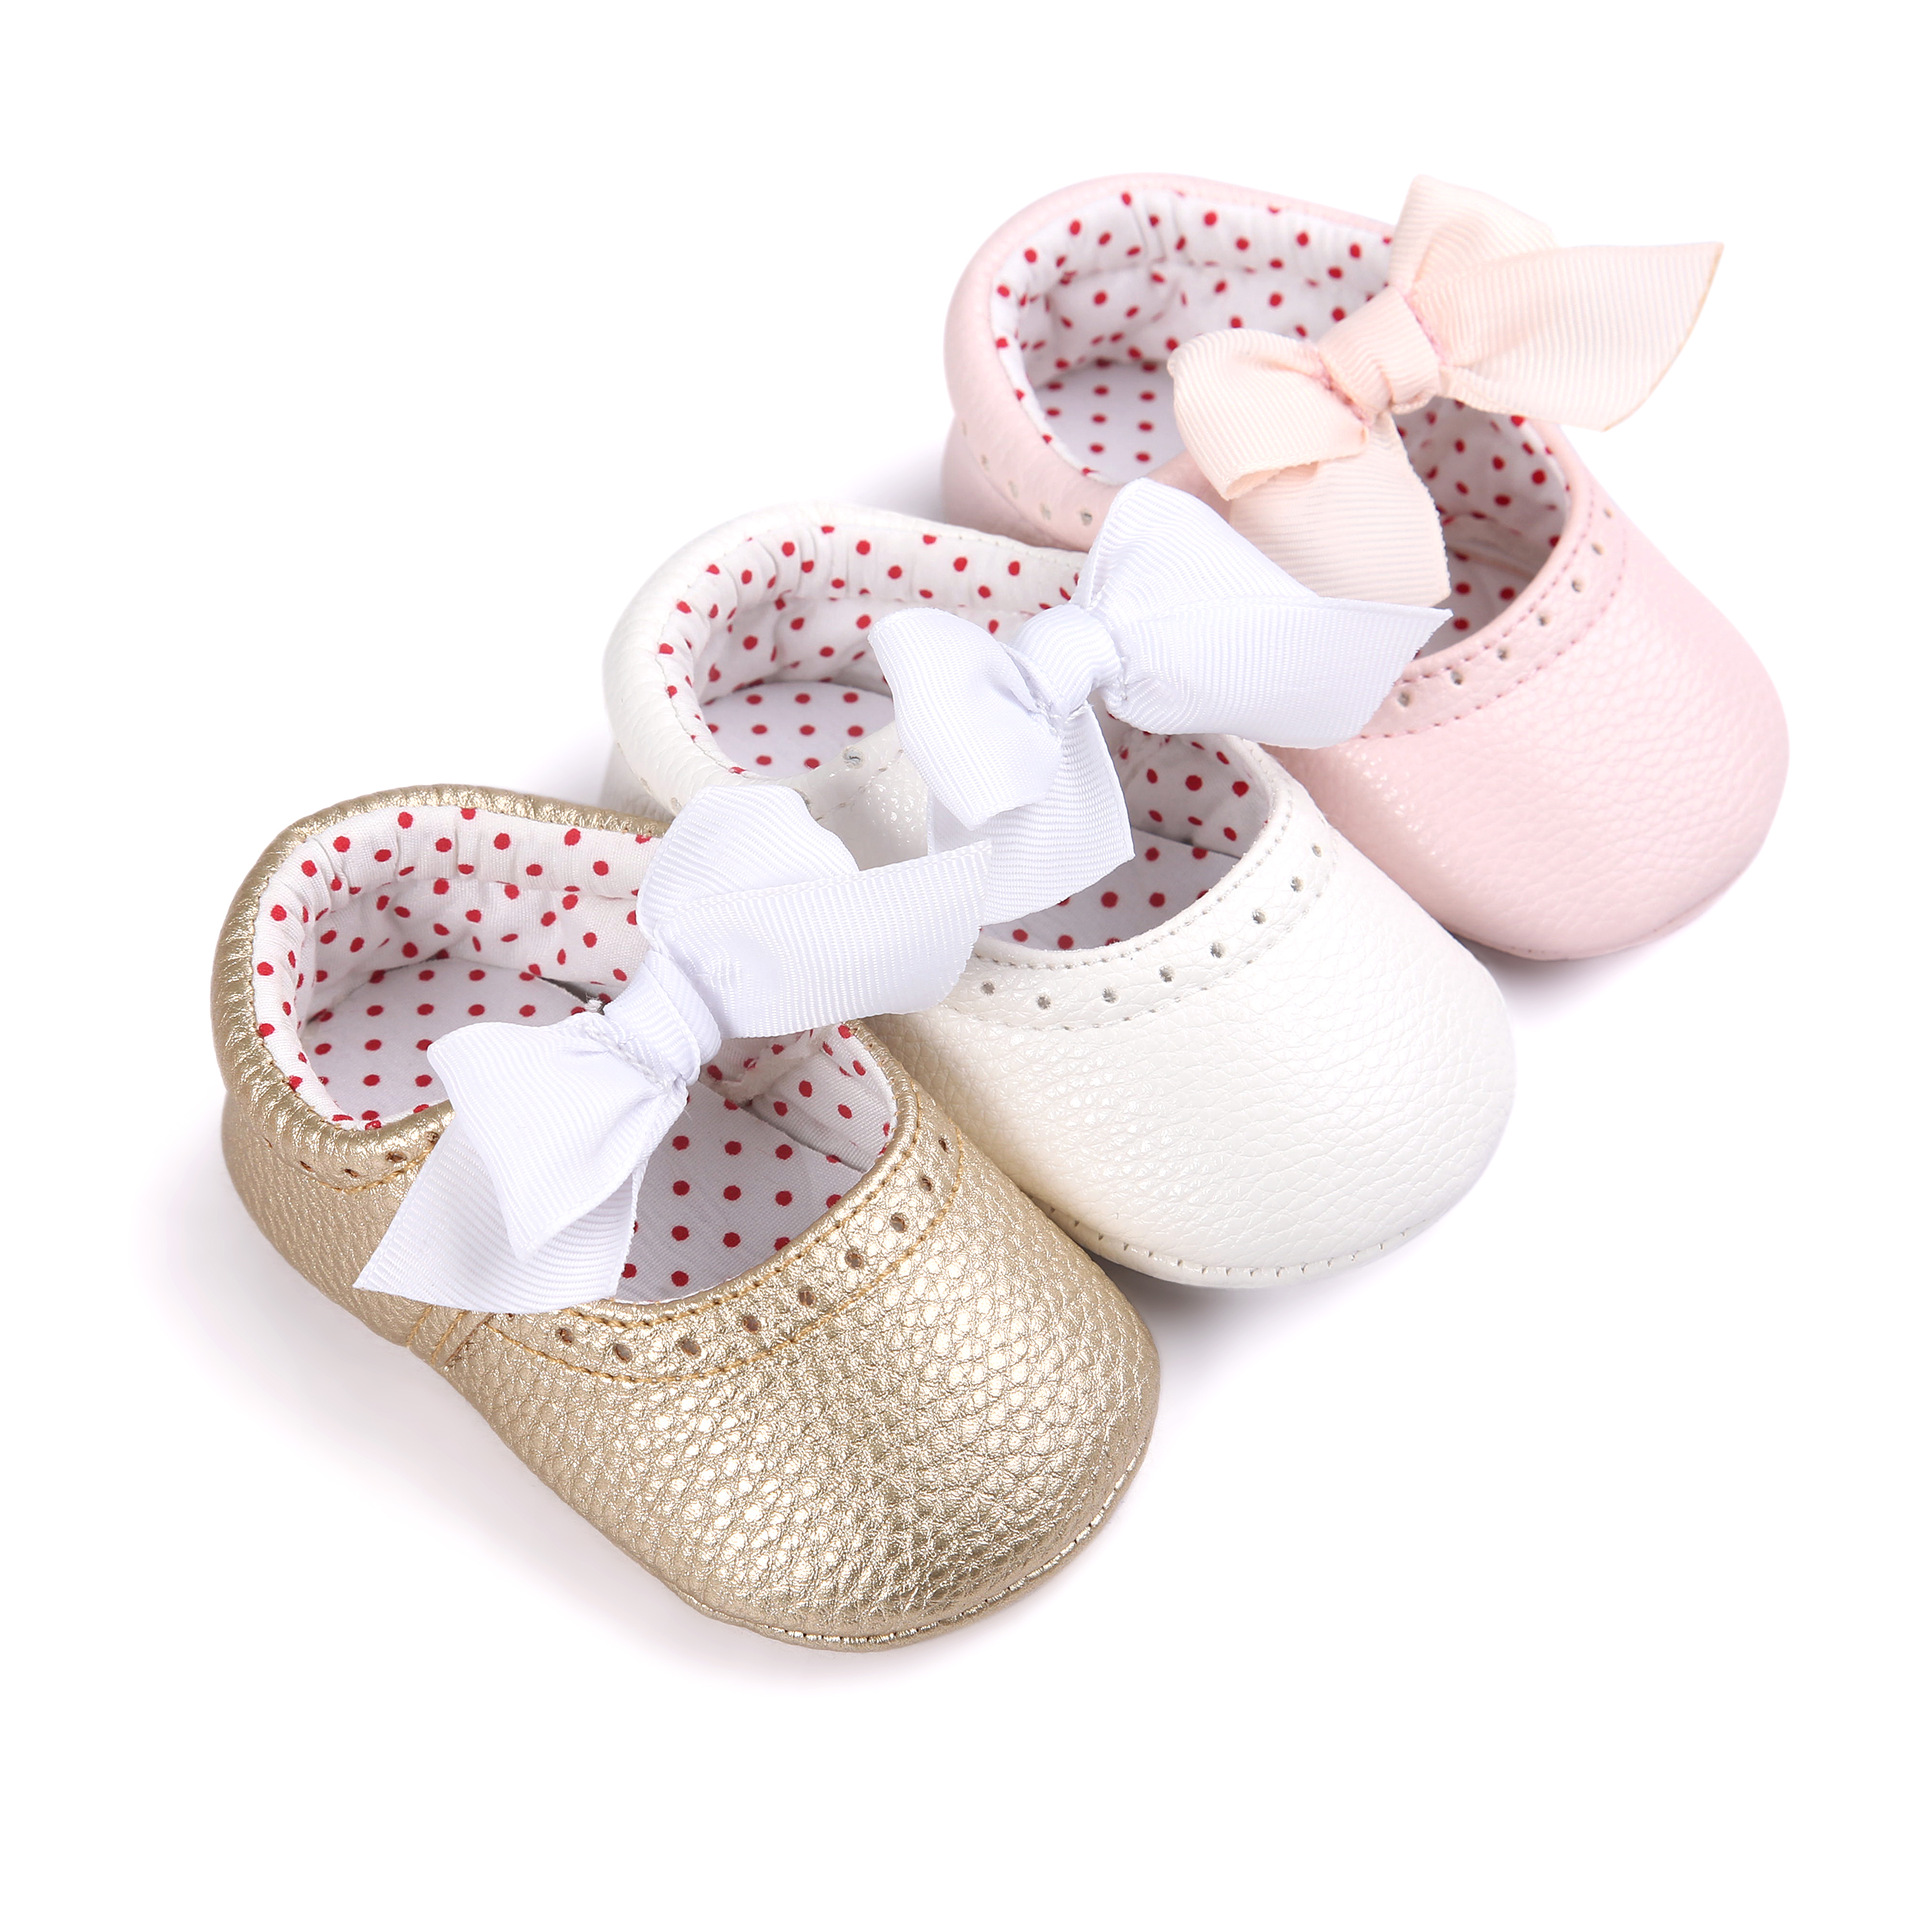 basket gold pictures angeles newborn los in baby bohemian based